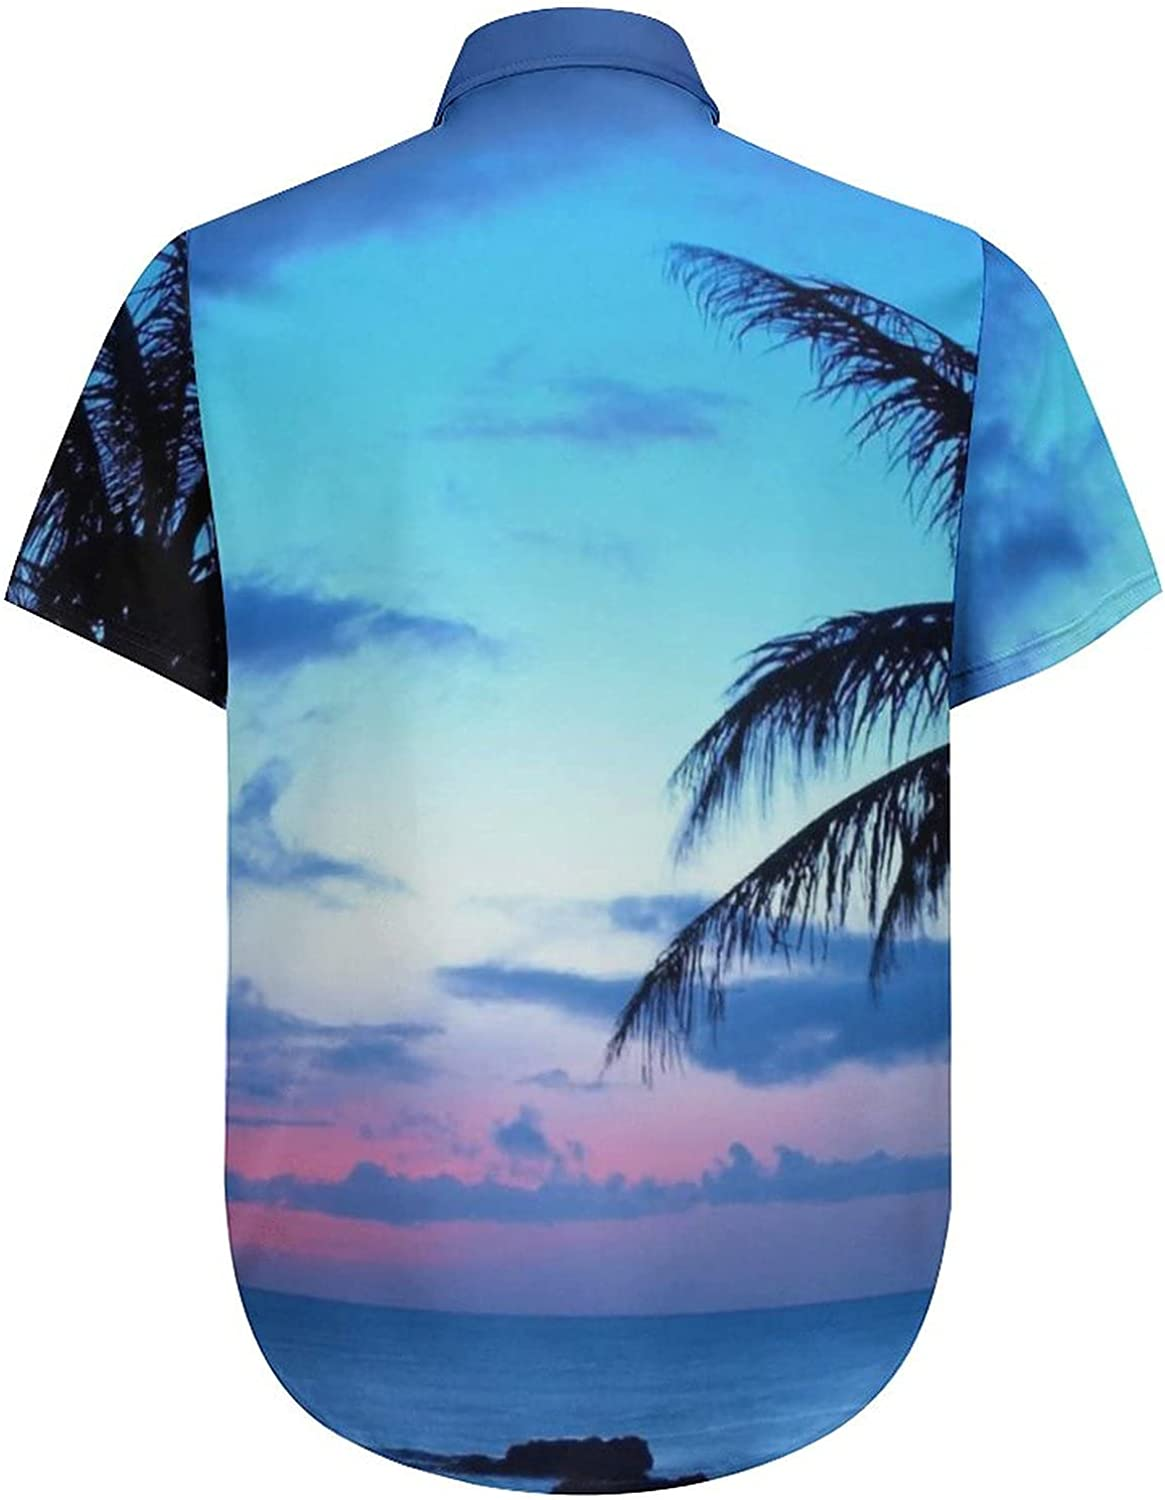 Men's Regular-Fit Short-Sleeve Printed Party Holiday Shirt Palm Tree Blue Sky Sunset